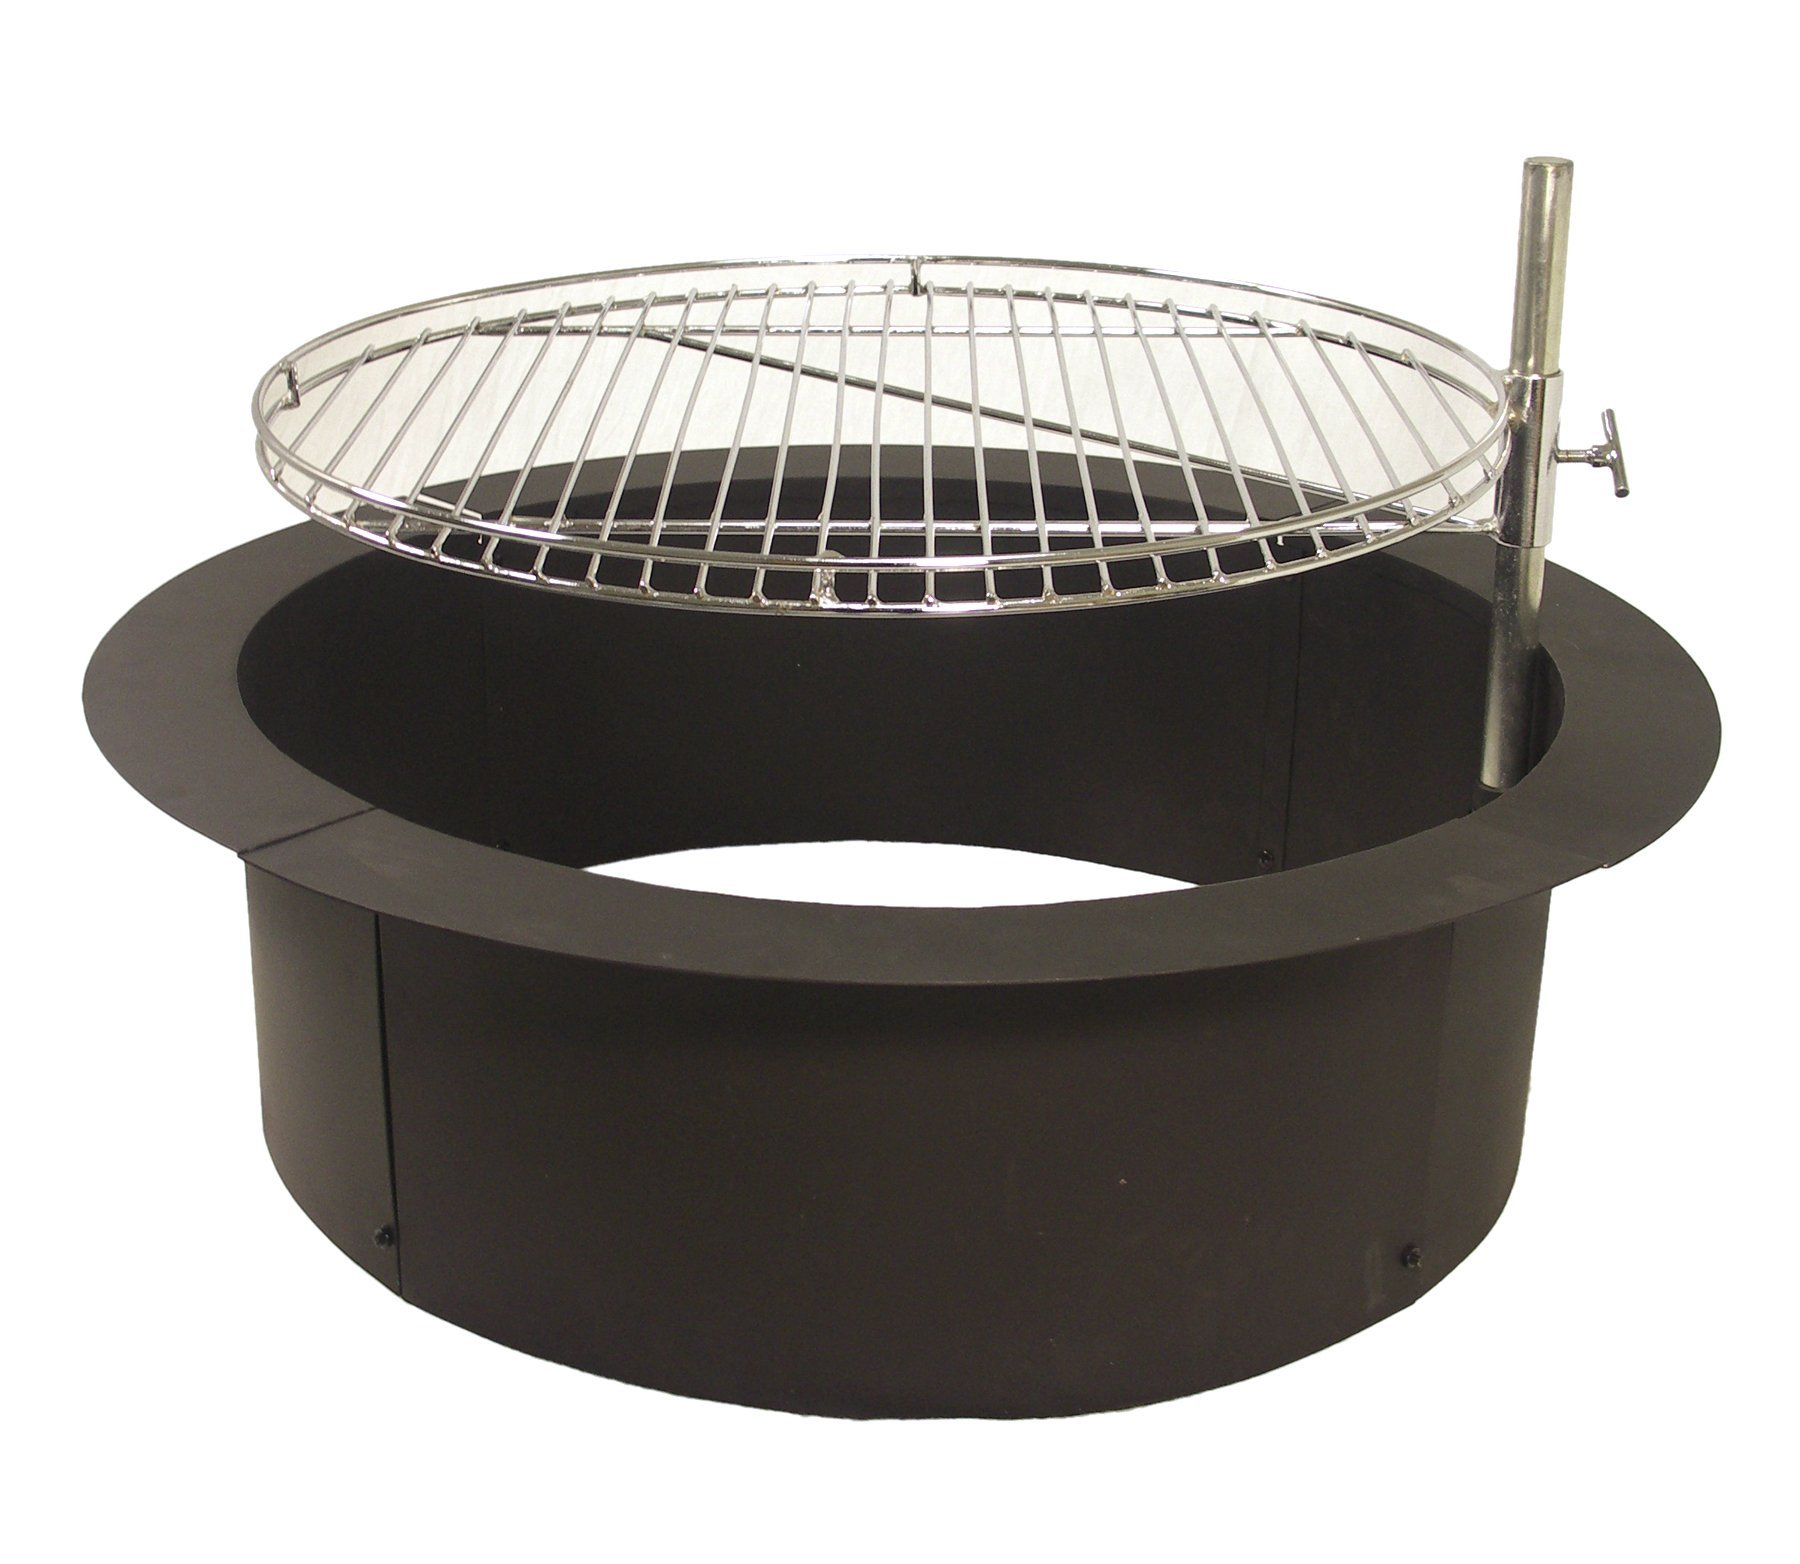 Catalina Creations Heavy Duty Fire Ring with Cooking Grate